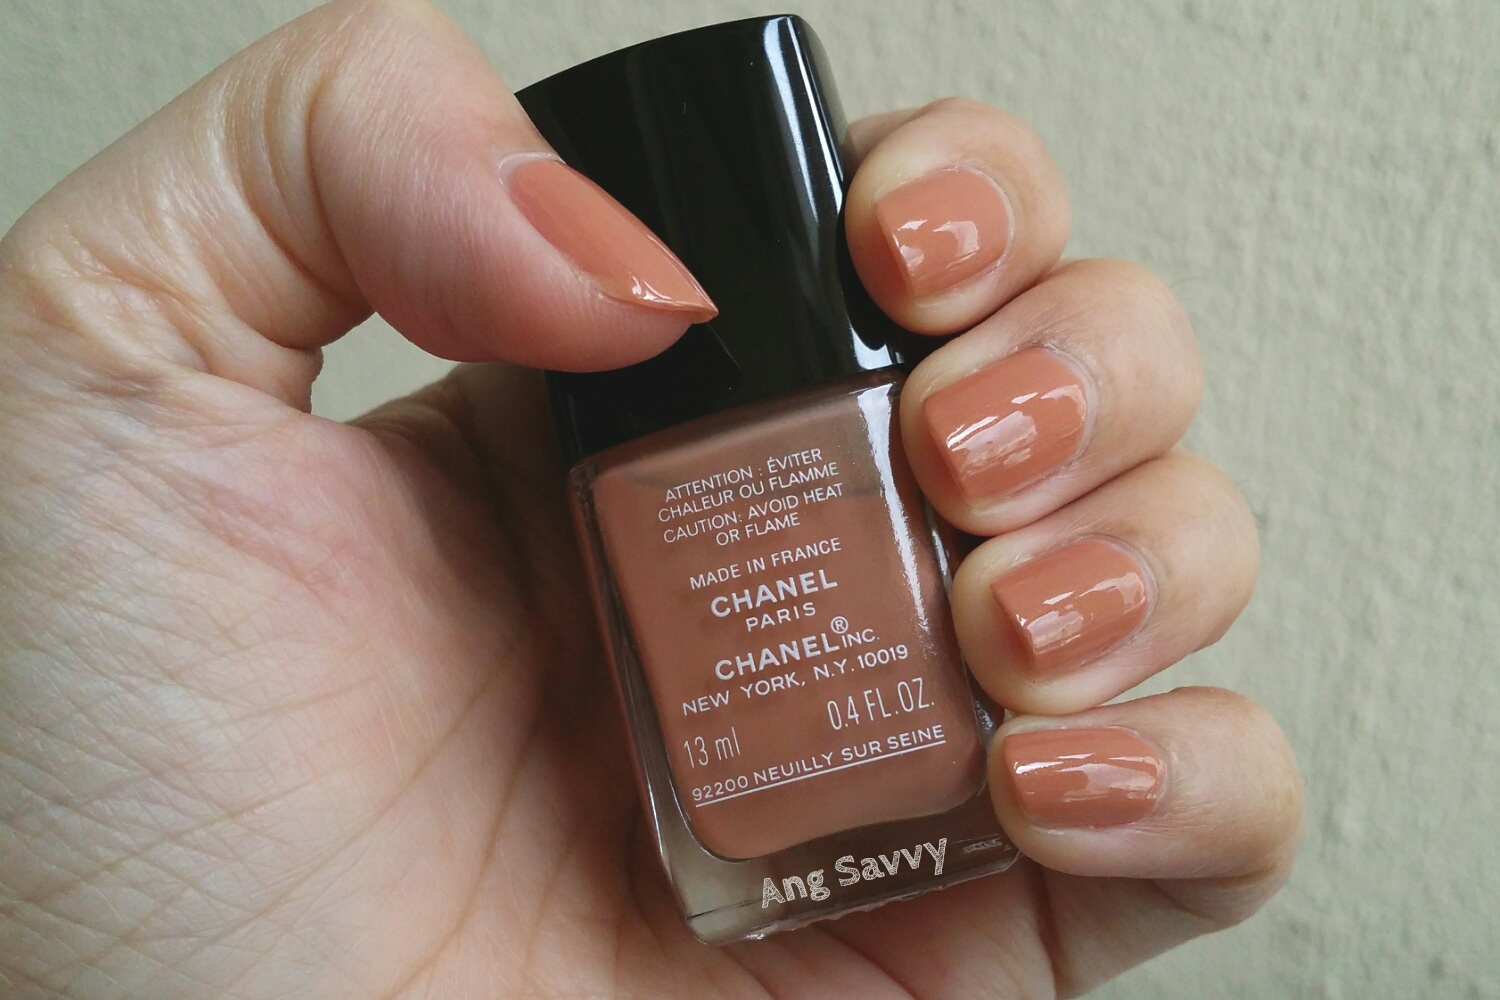 Chanel Le Vernis Nail Colour in 633 Intention